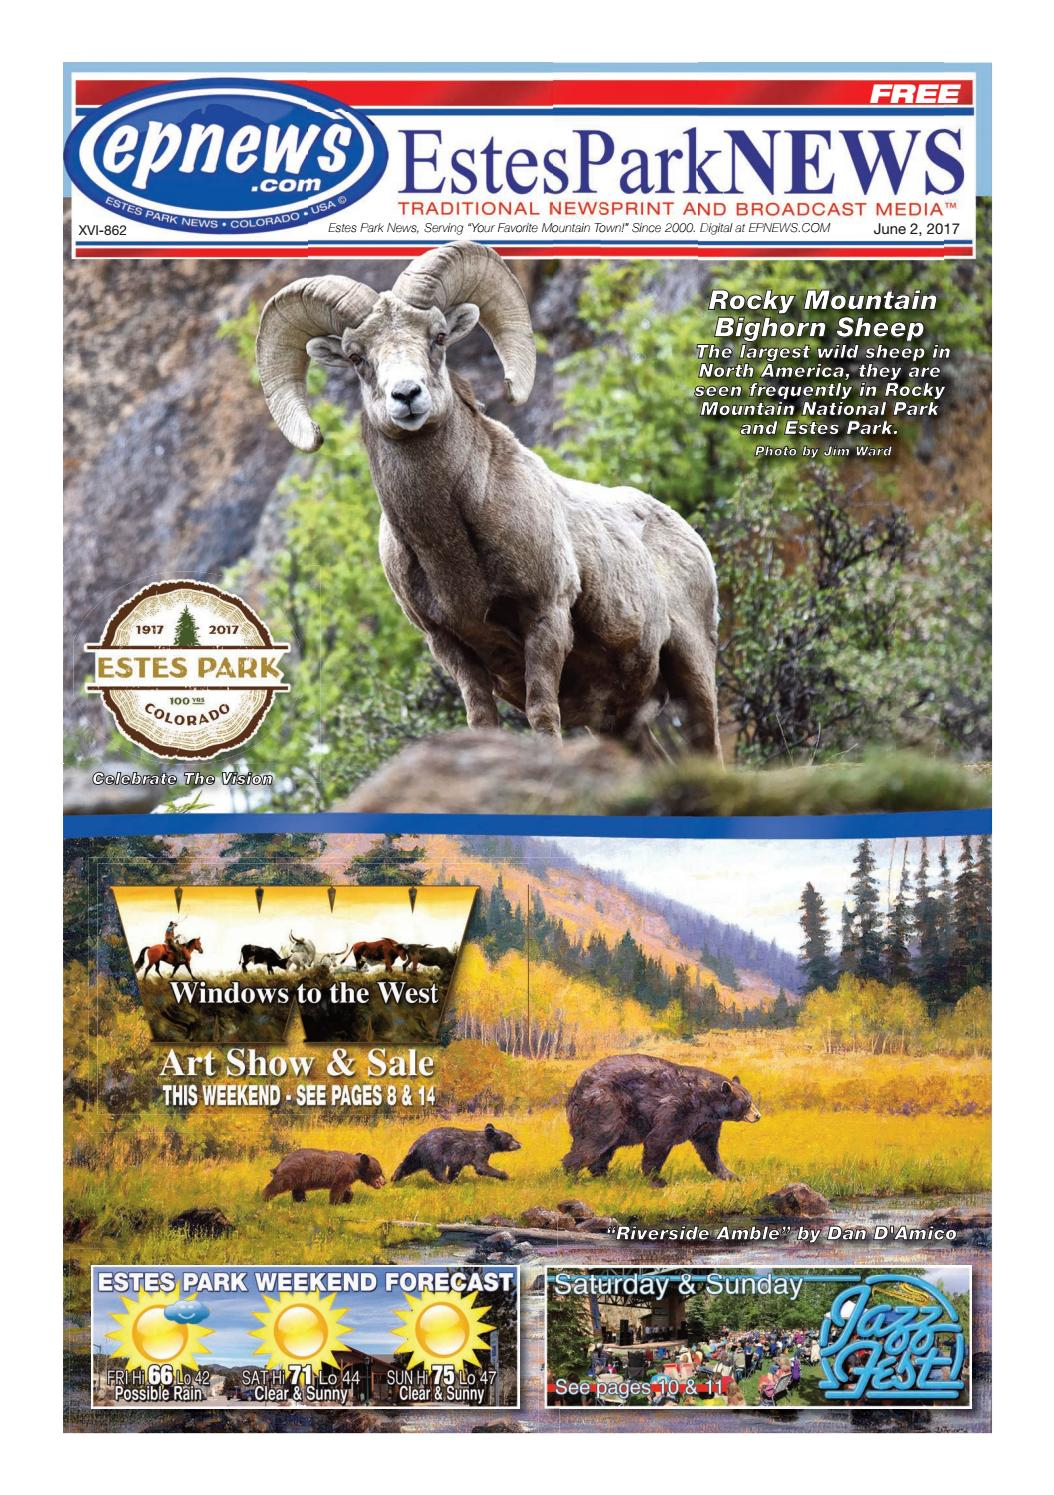 Estes Park News June 2 2017 By Estes Park News Inc Issuu